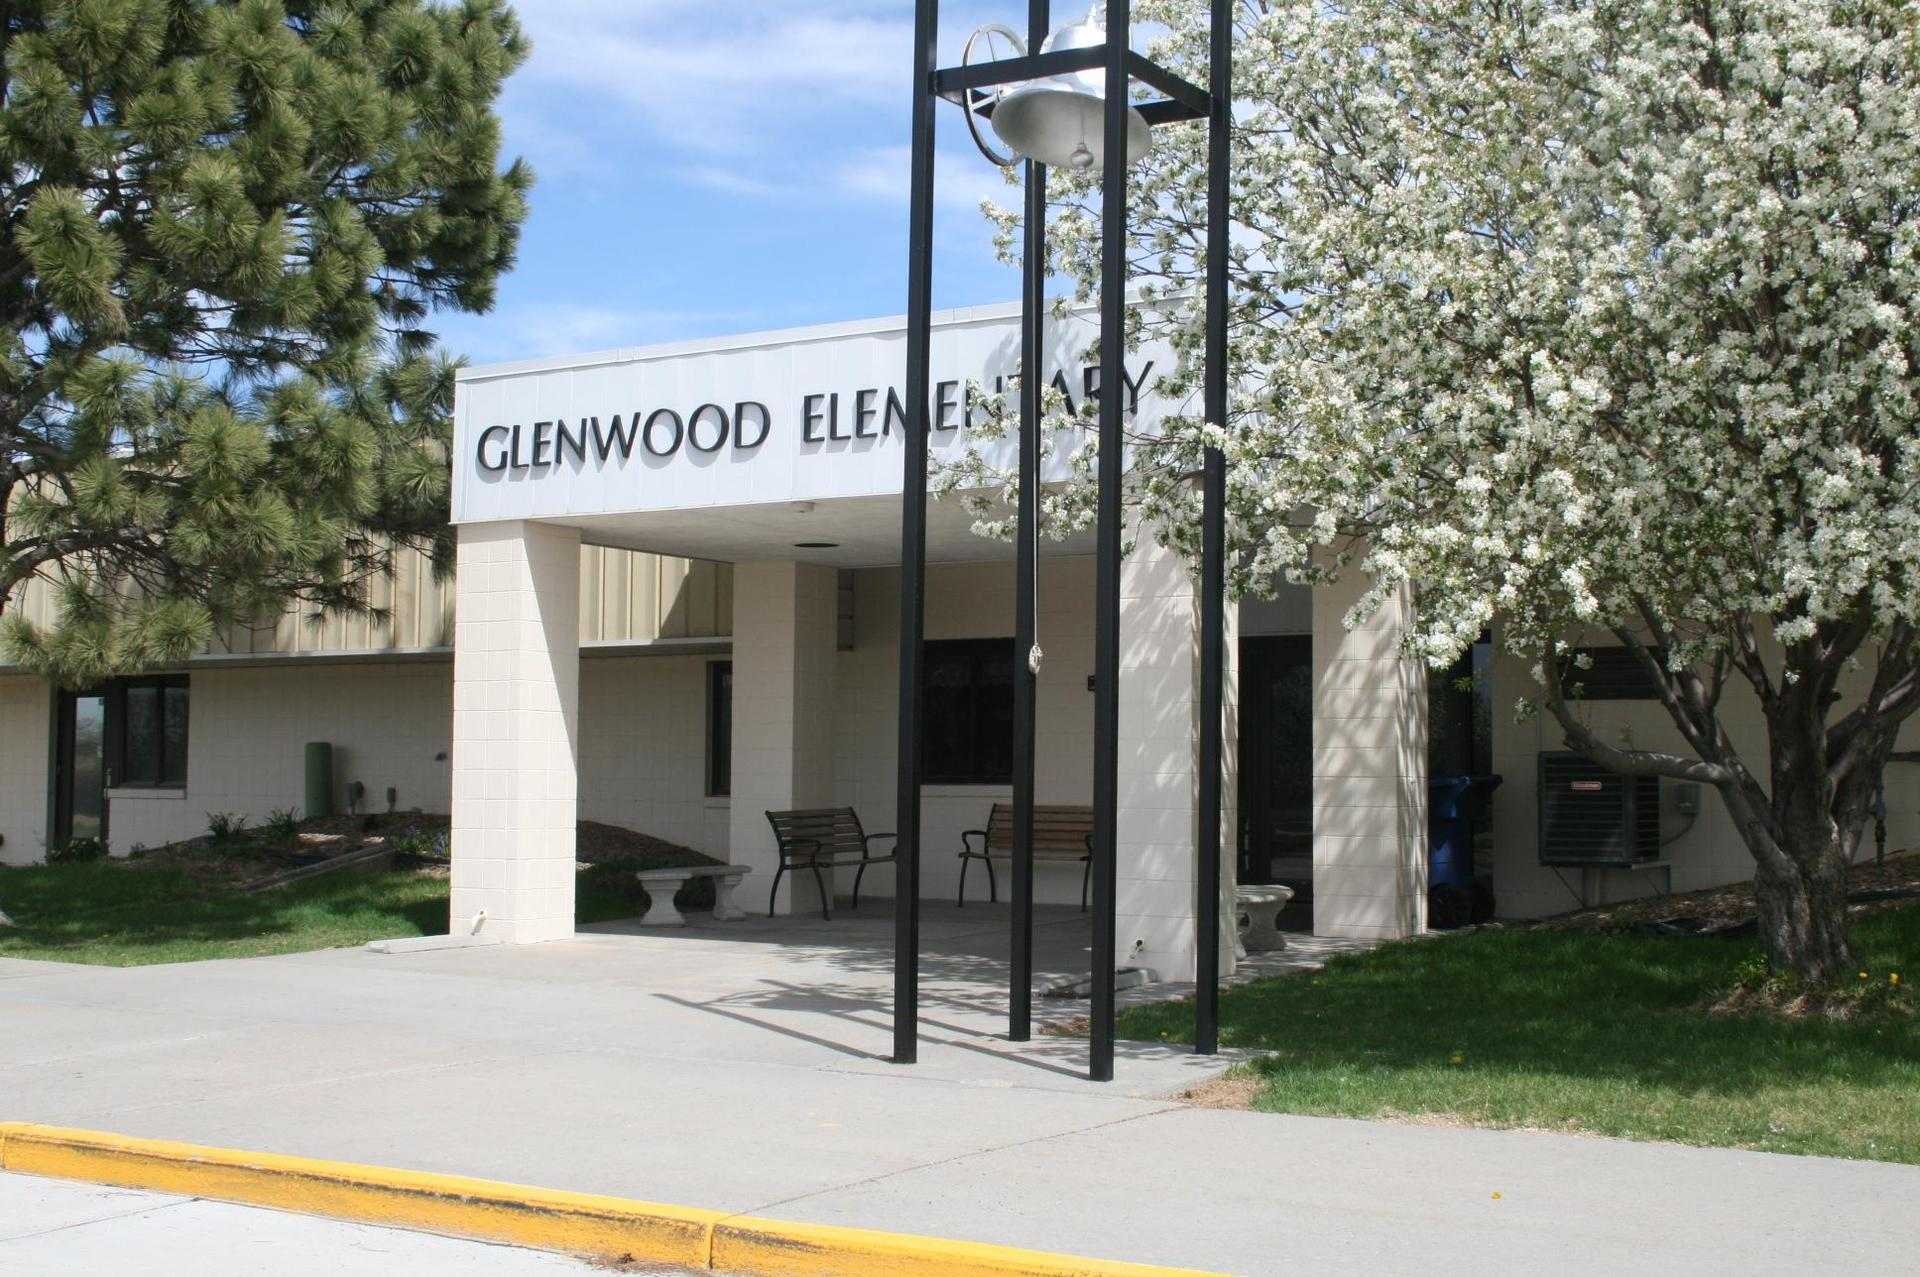 GLENWOOD SCHOOL